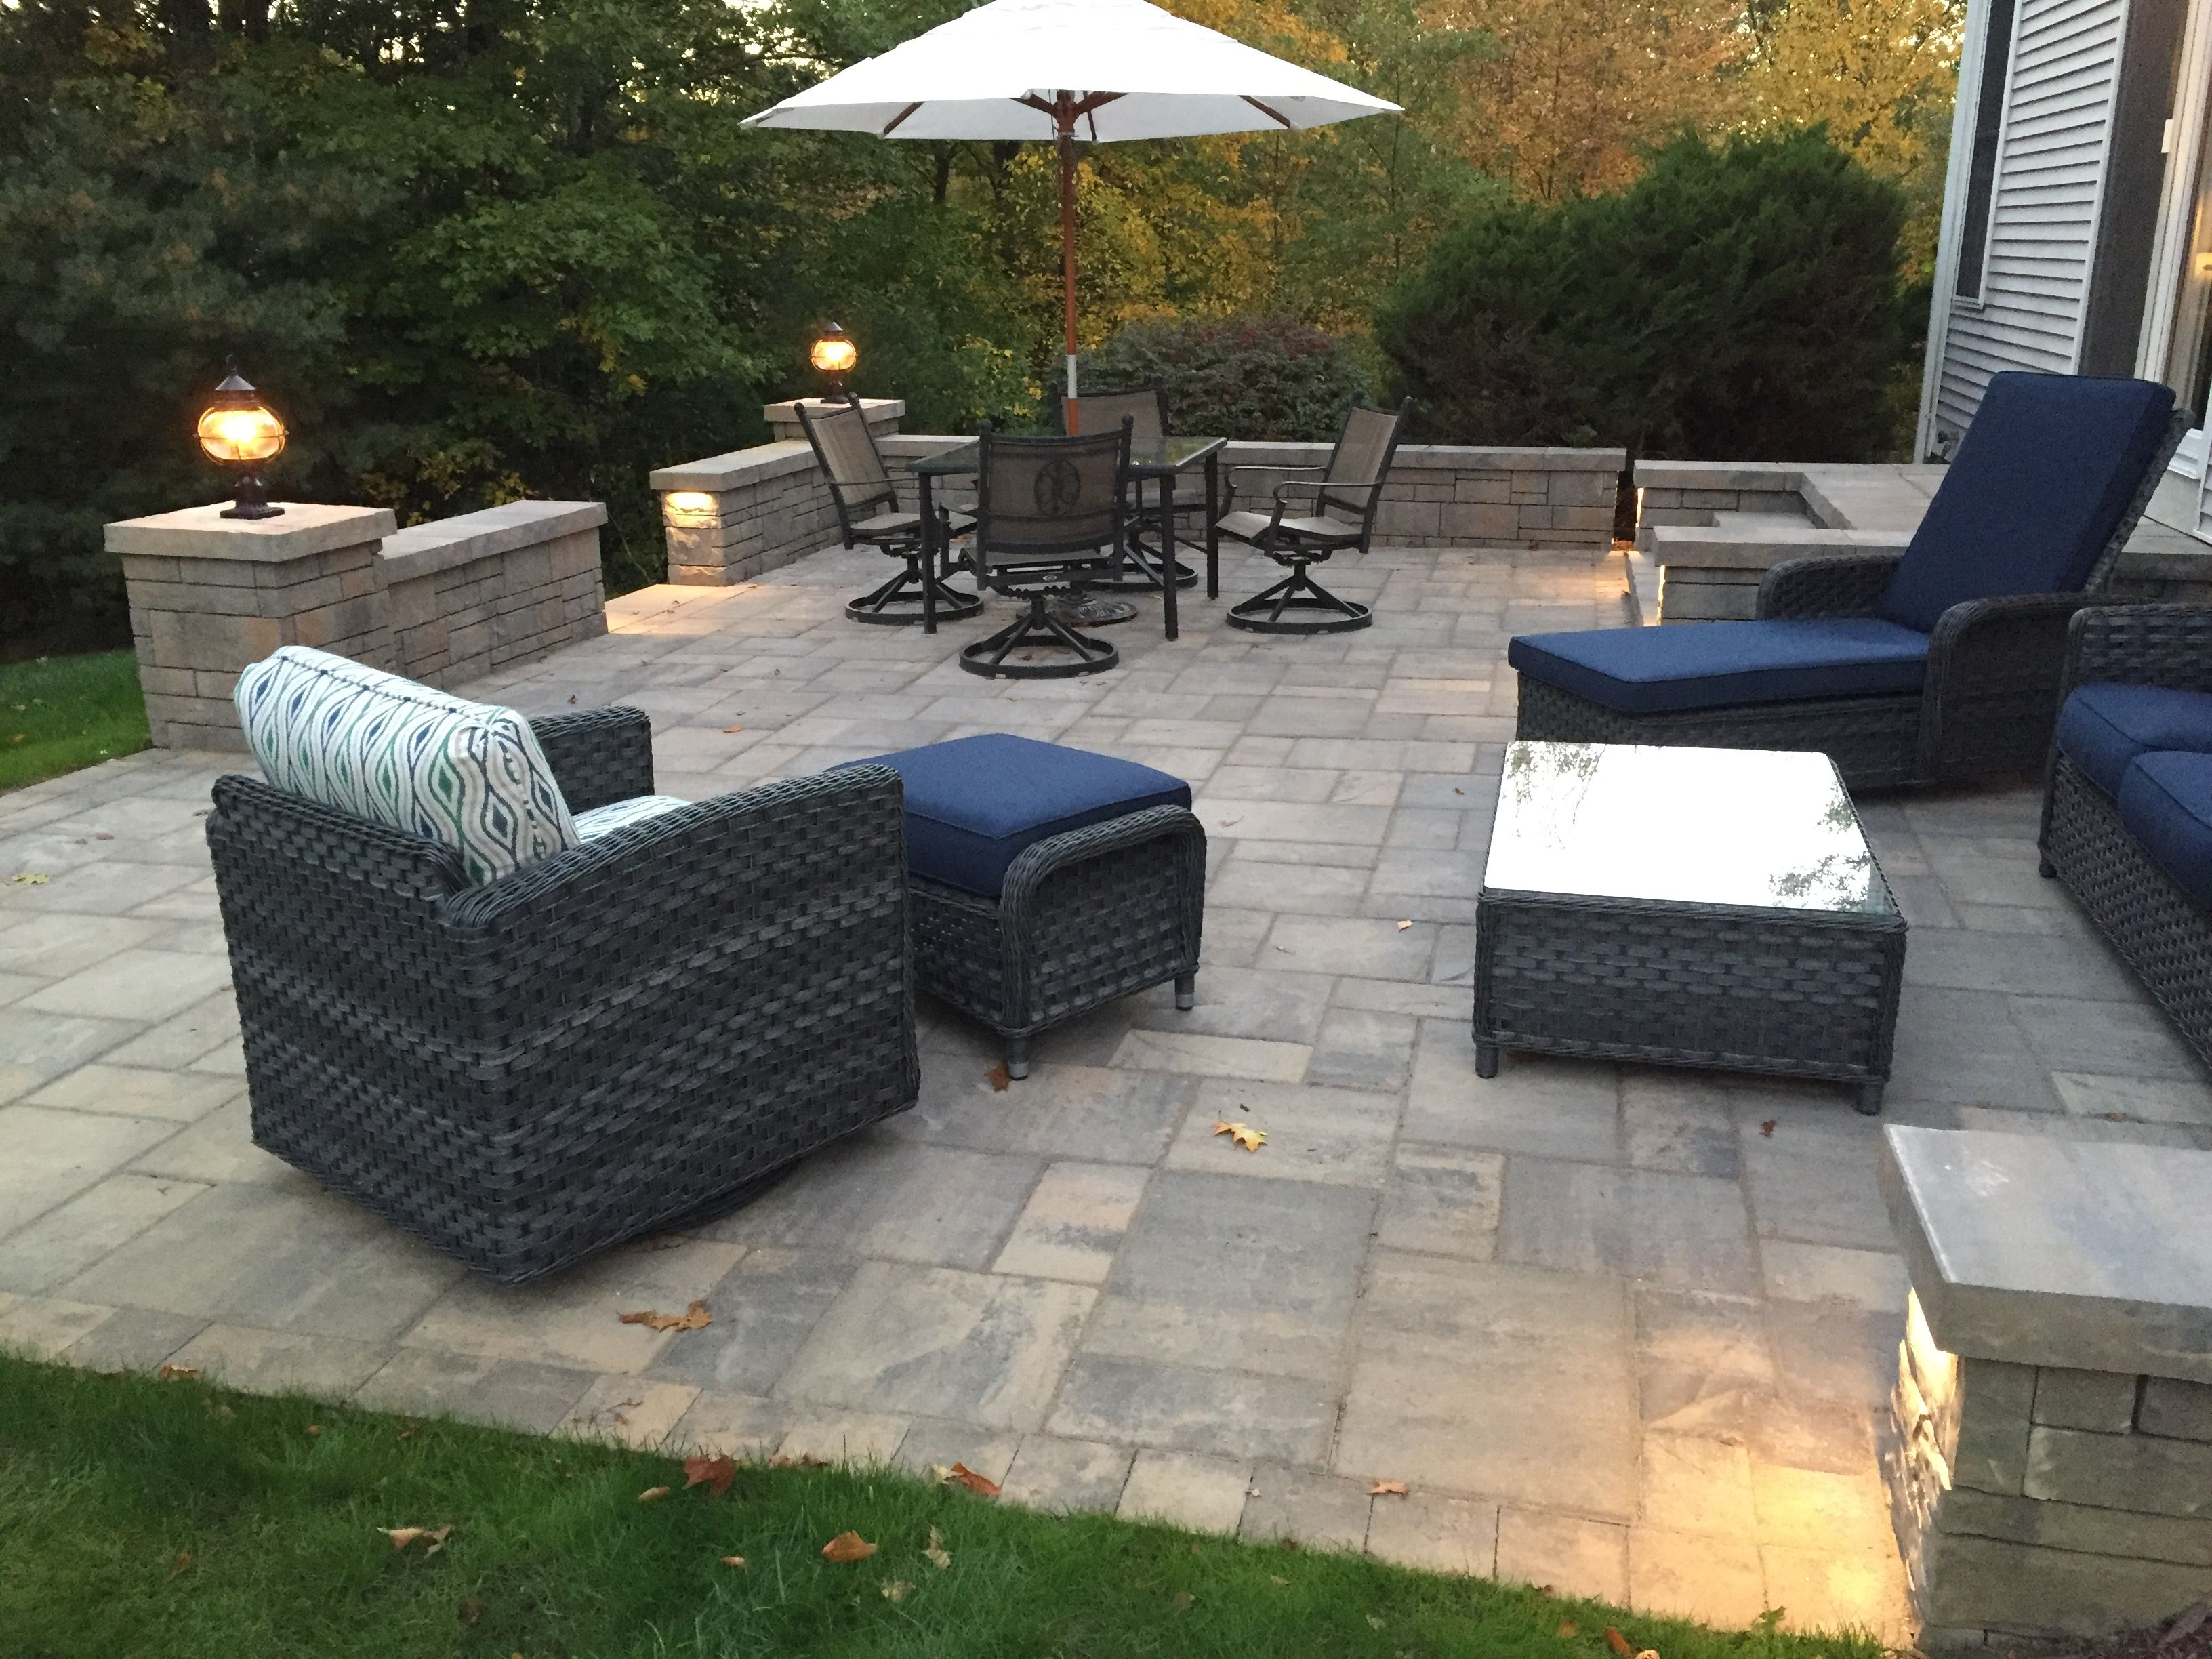 Laffit pavers and Tandem wall by Belgard Much cleaner look than